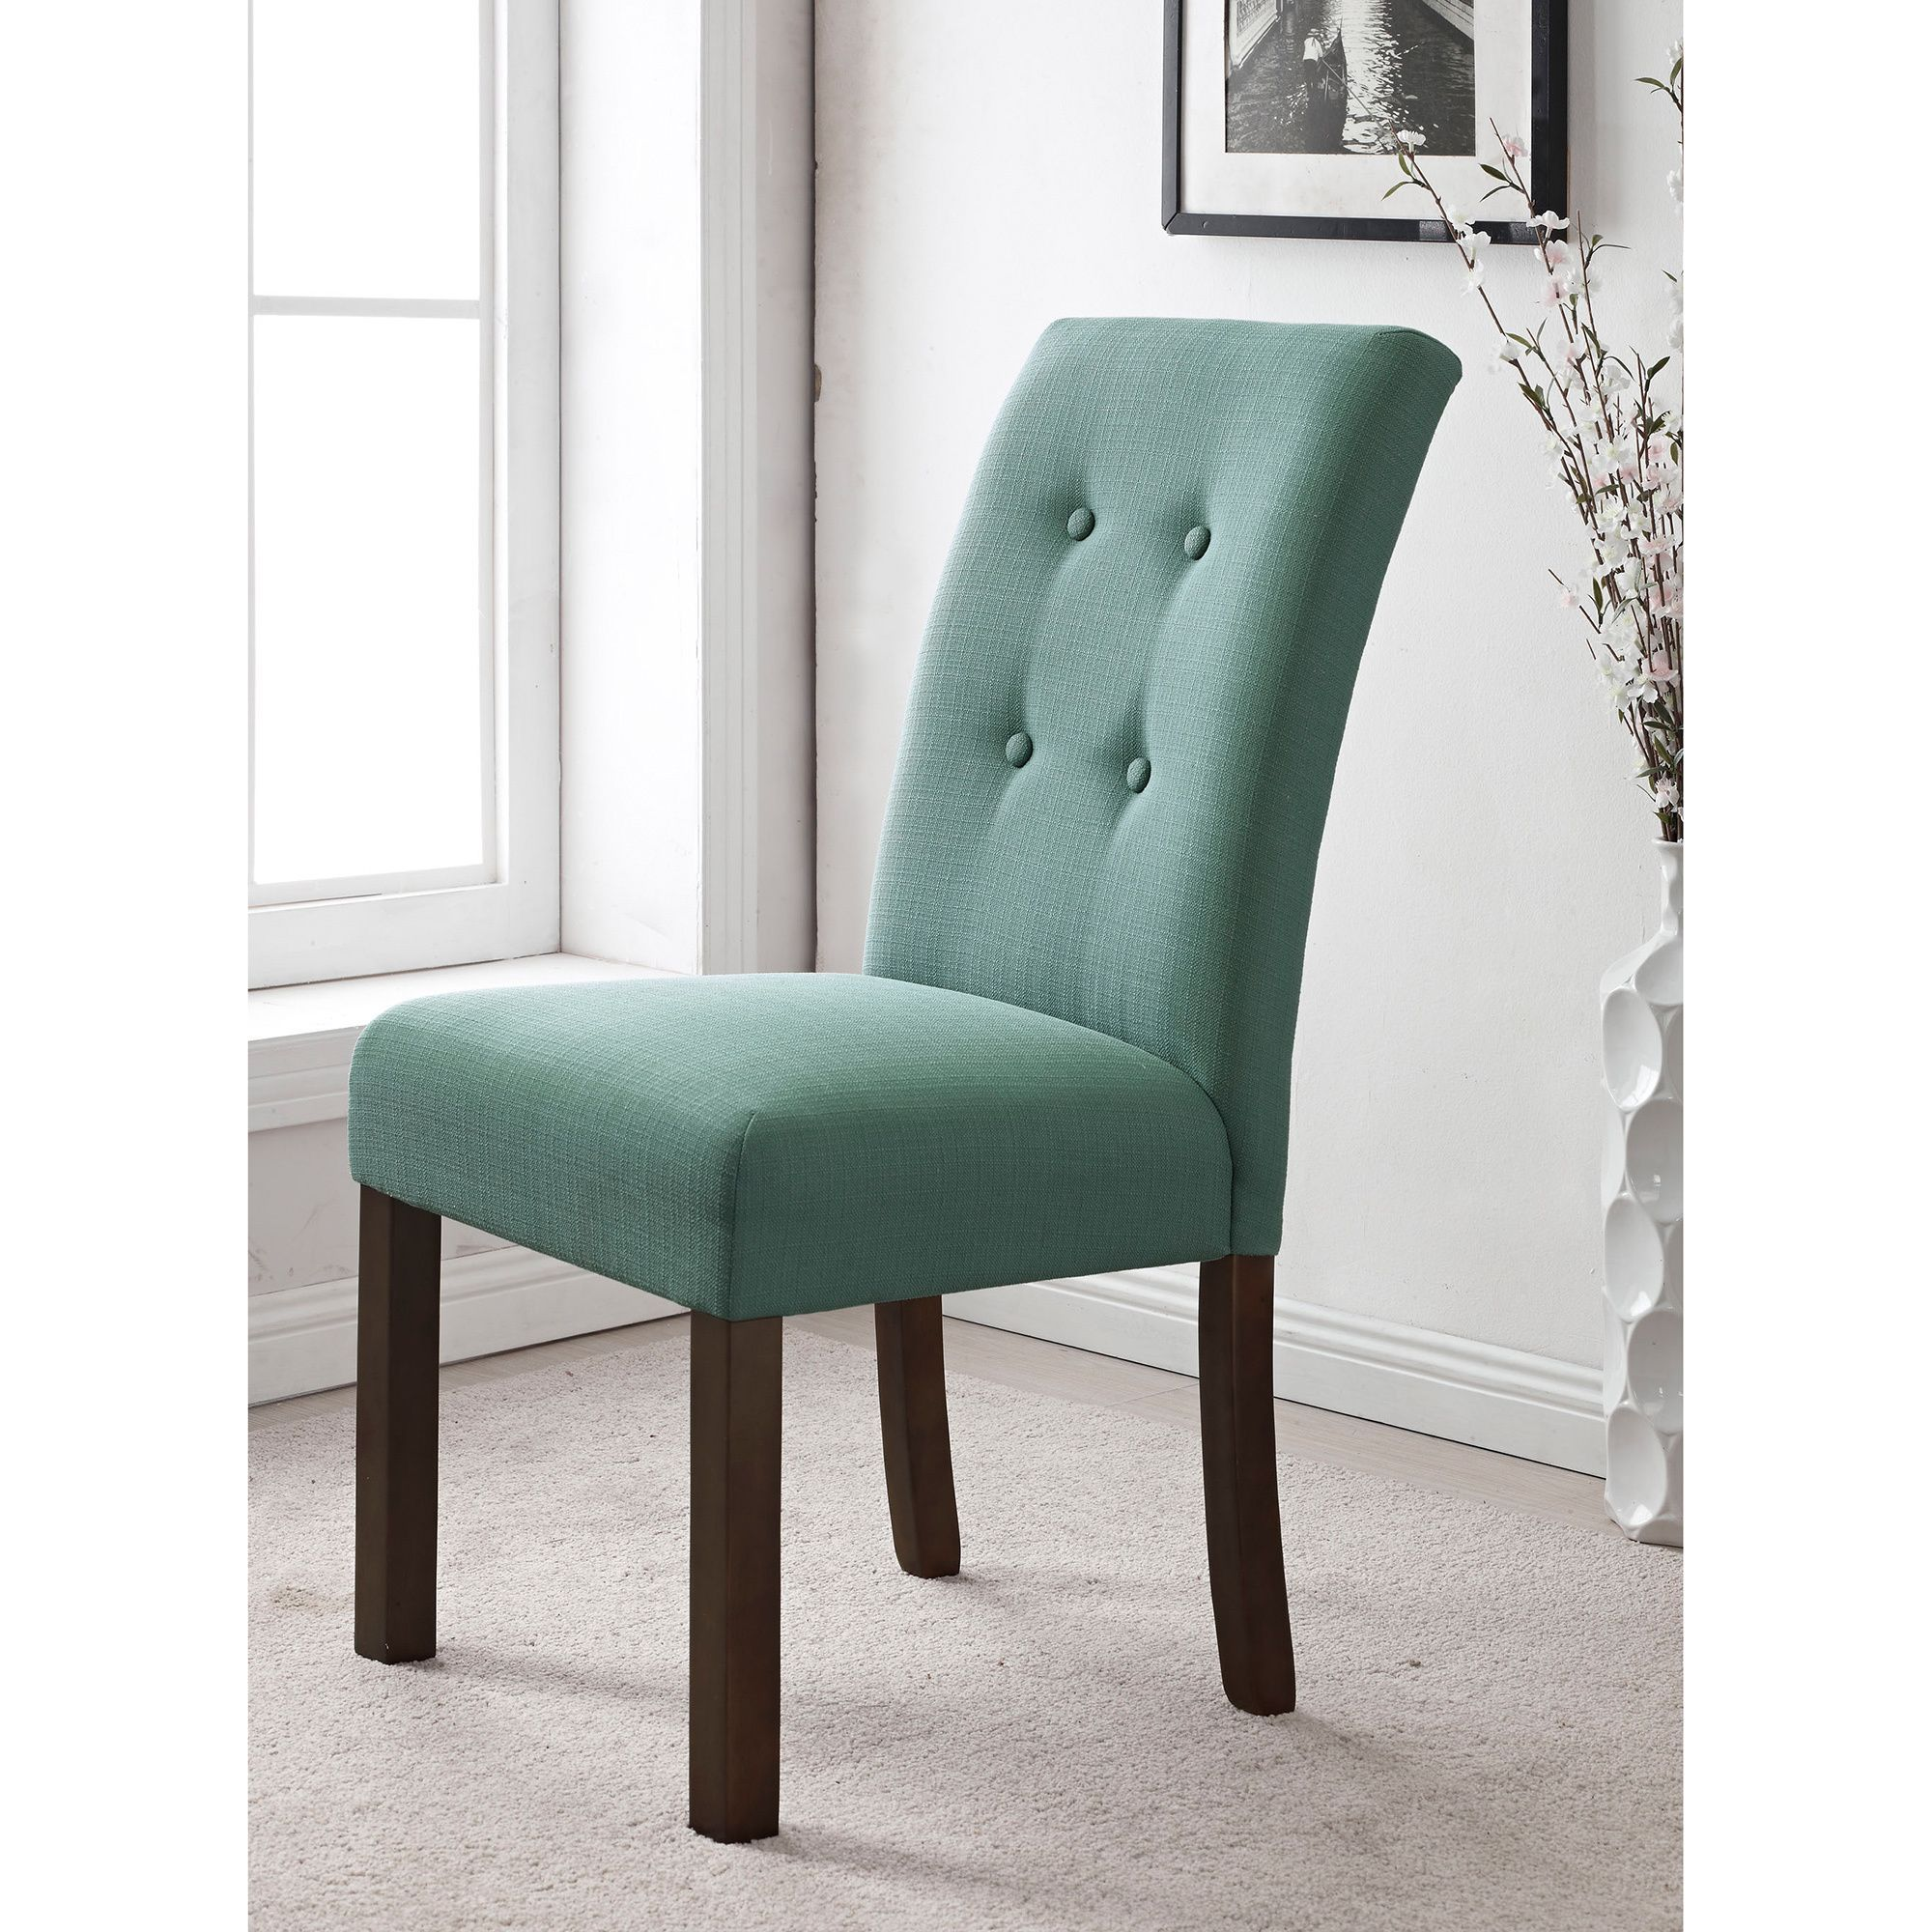 HomePop 4 button Tufted Aqua Textured Parsons Chair Set of 2